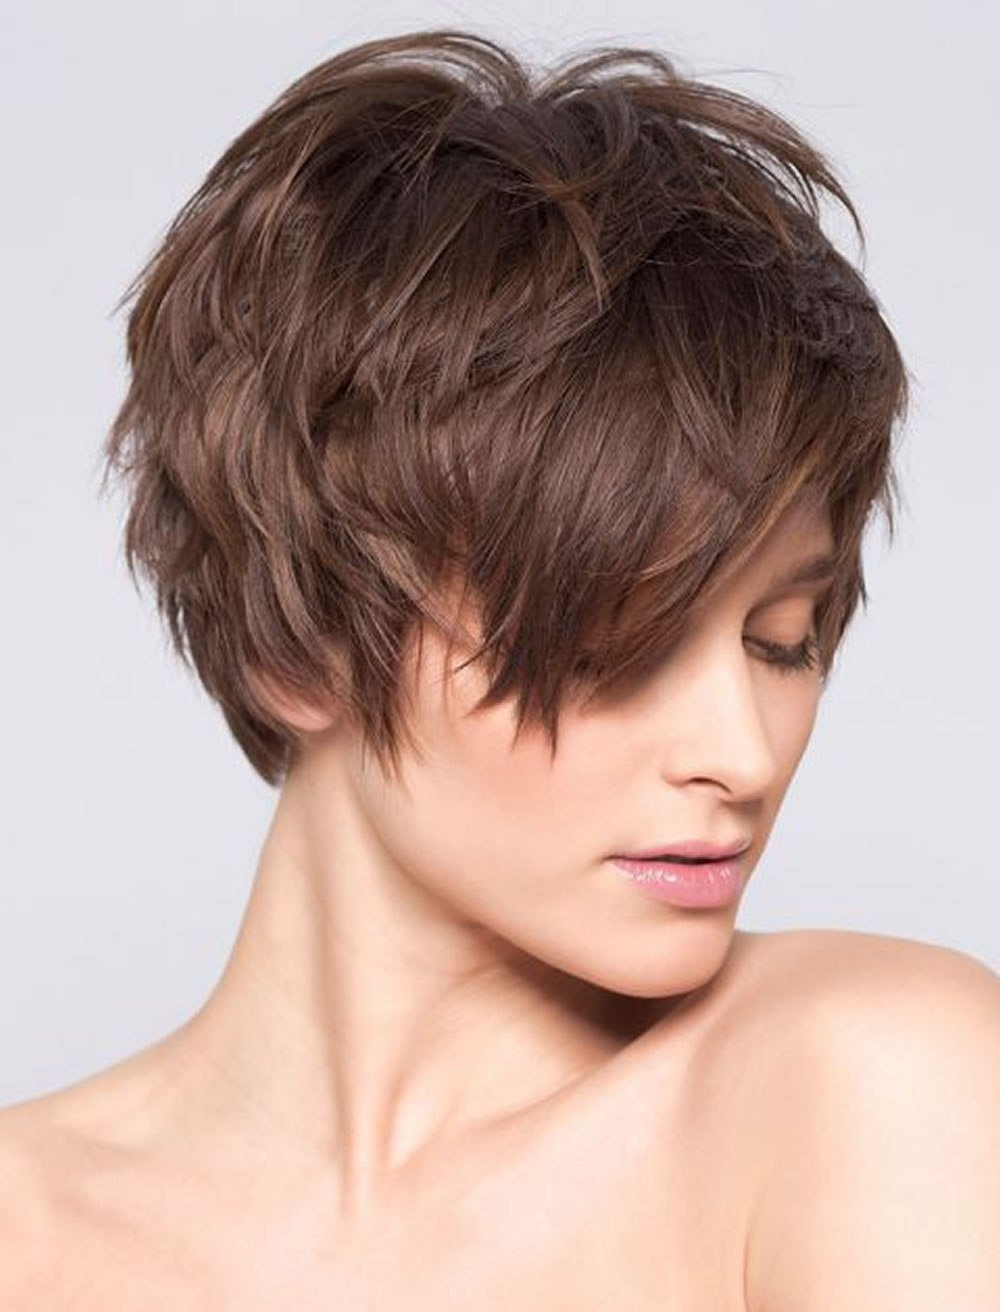 The Best Easy Hairstyles For Short Hair 2018 2019 Pixie Hair Cuts Pictures